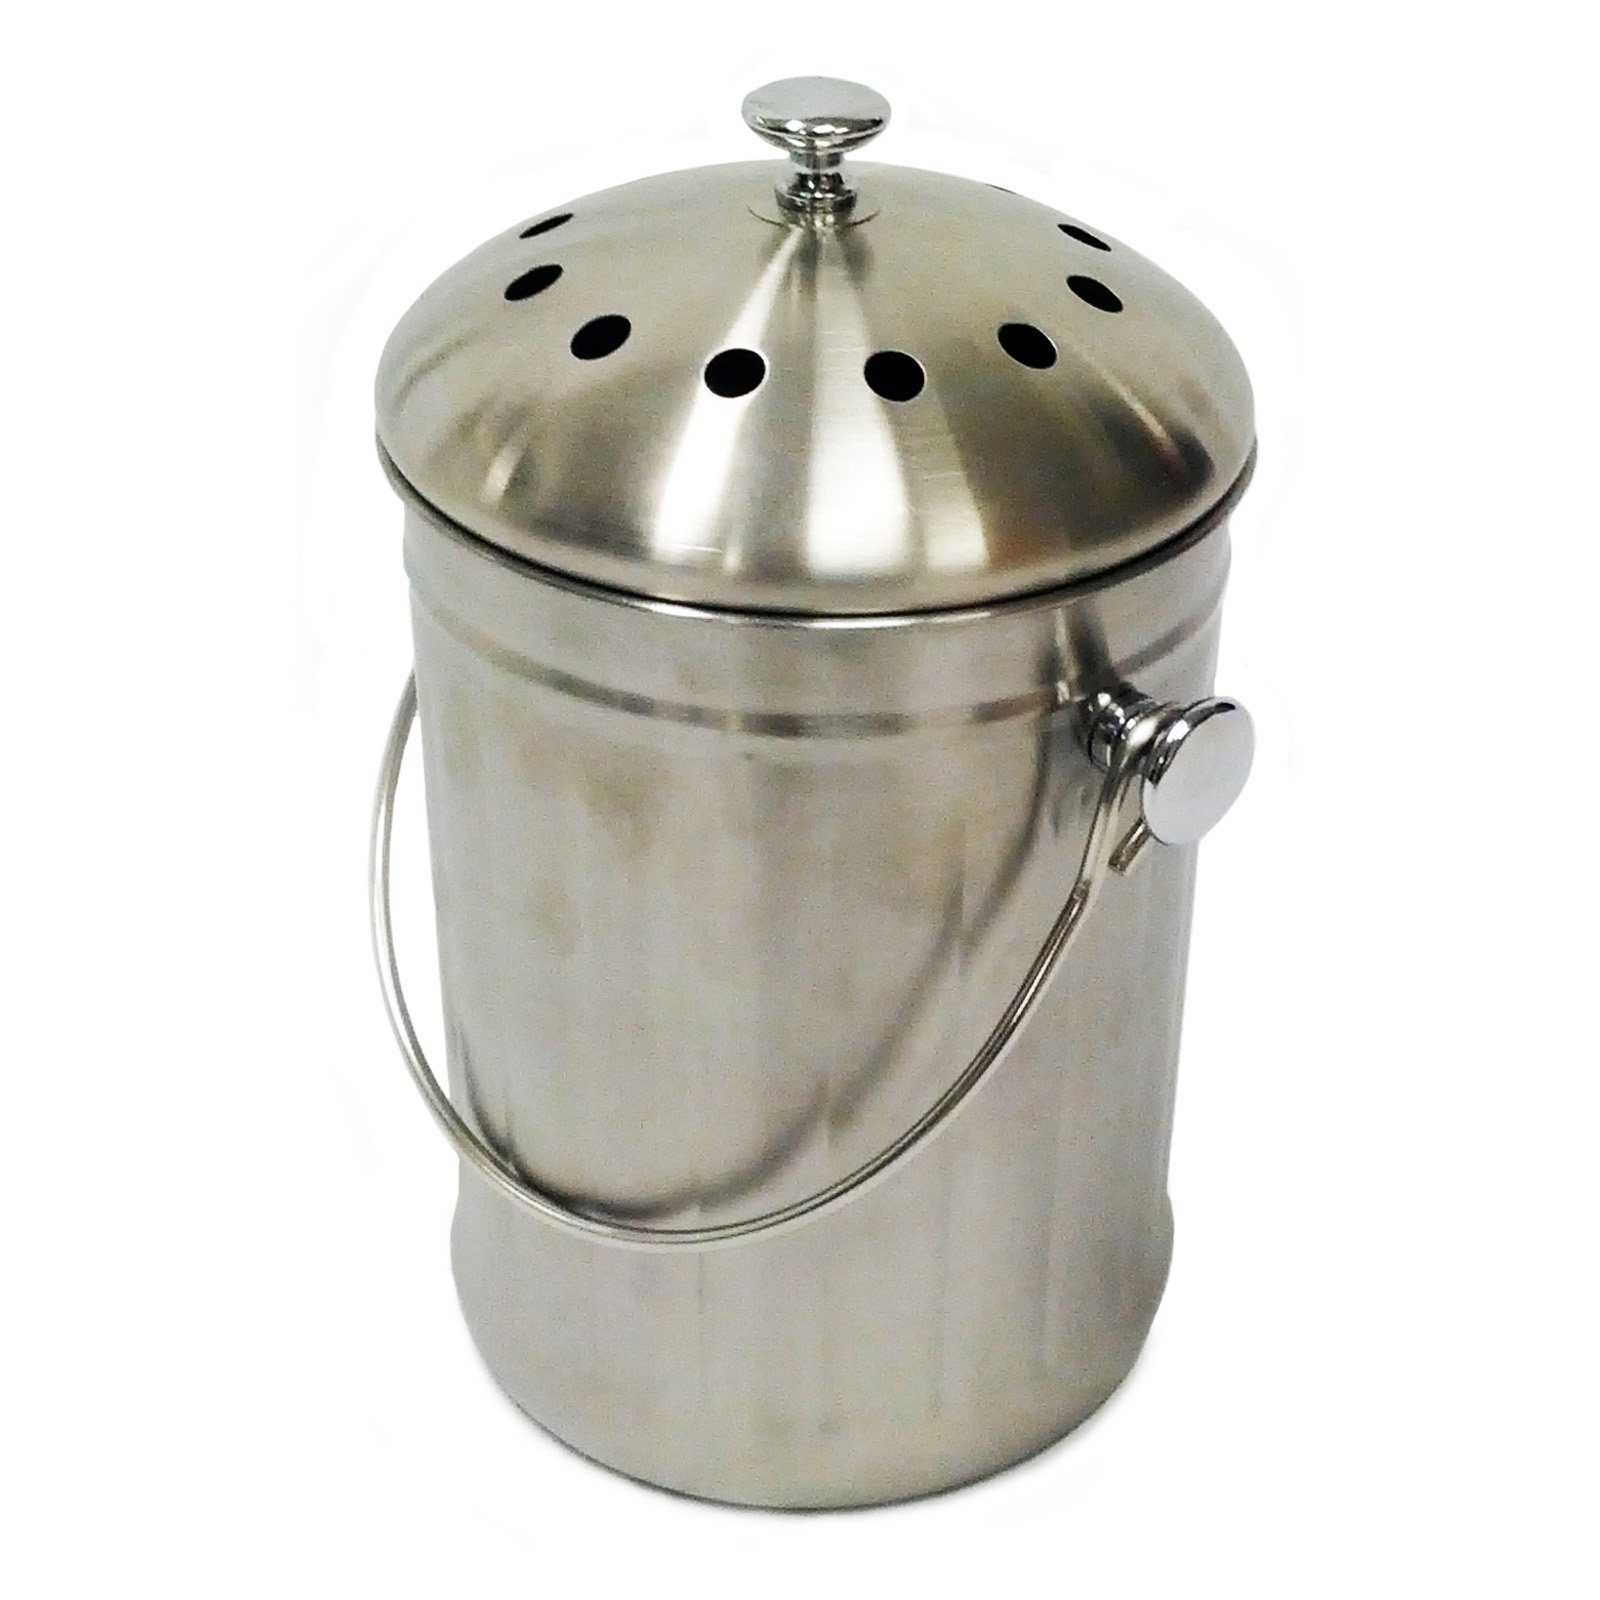 Compost Wizard Kitchen Accents, Stainless Steel Kitchen Composter by Generic